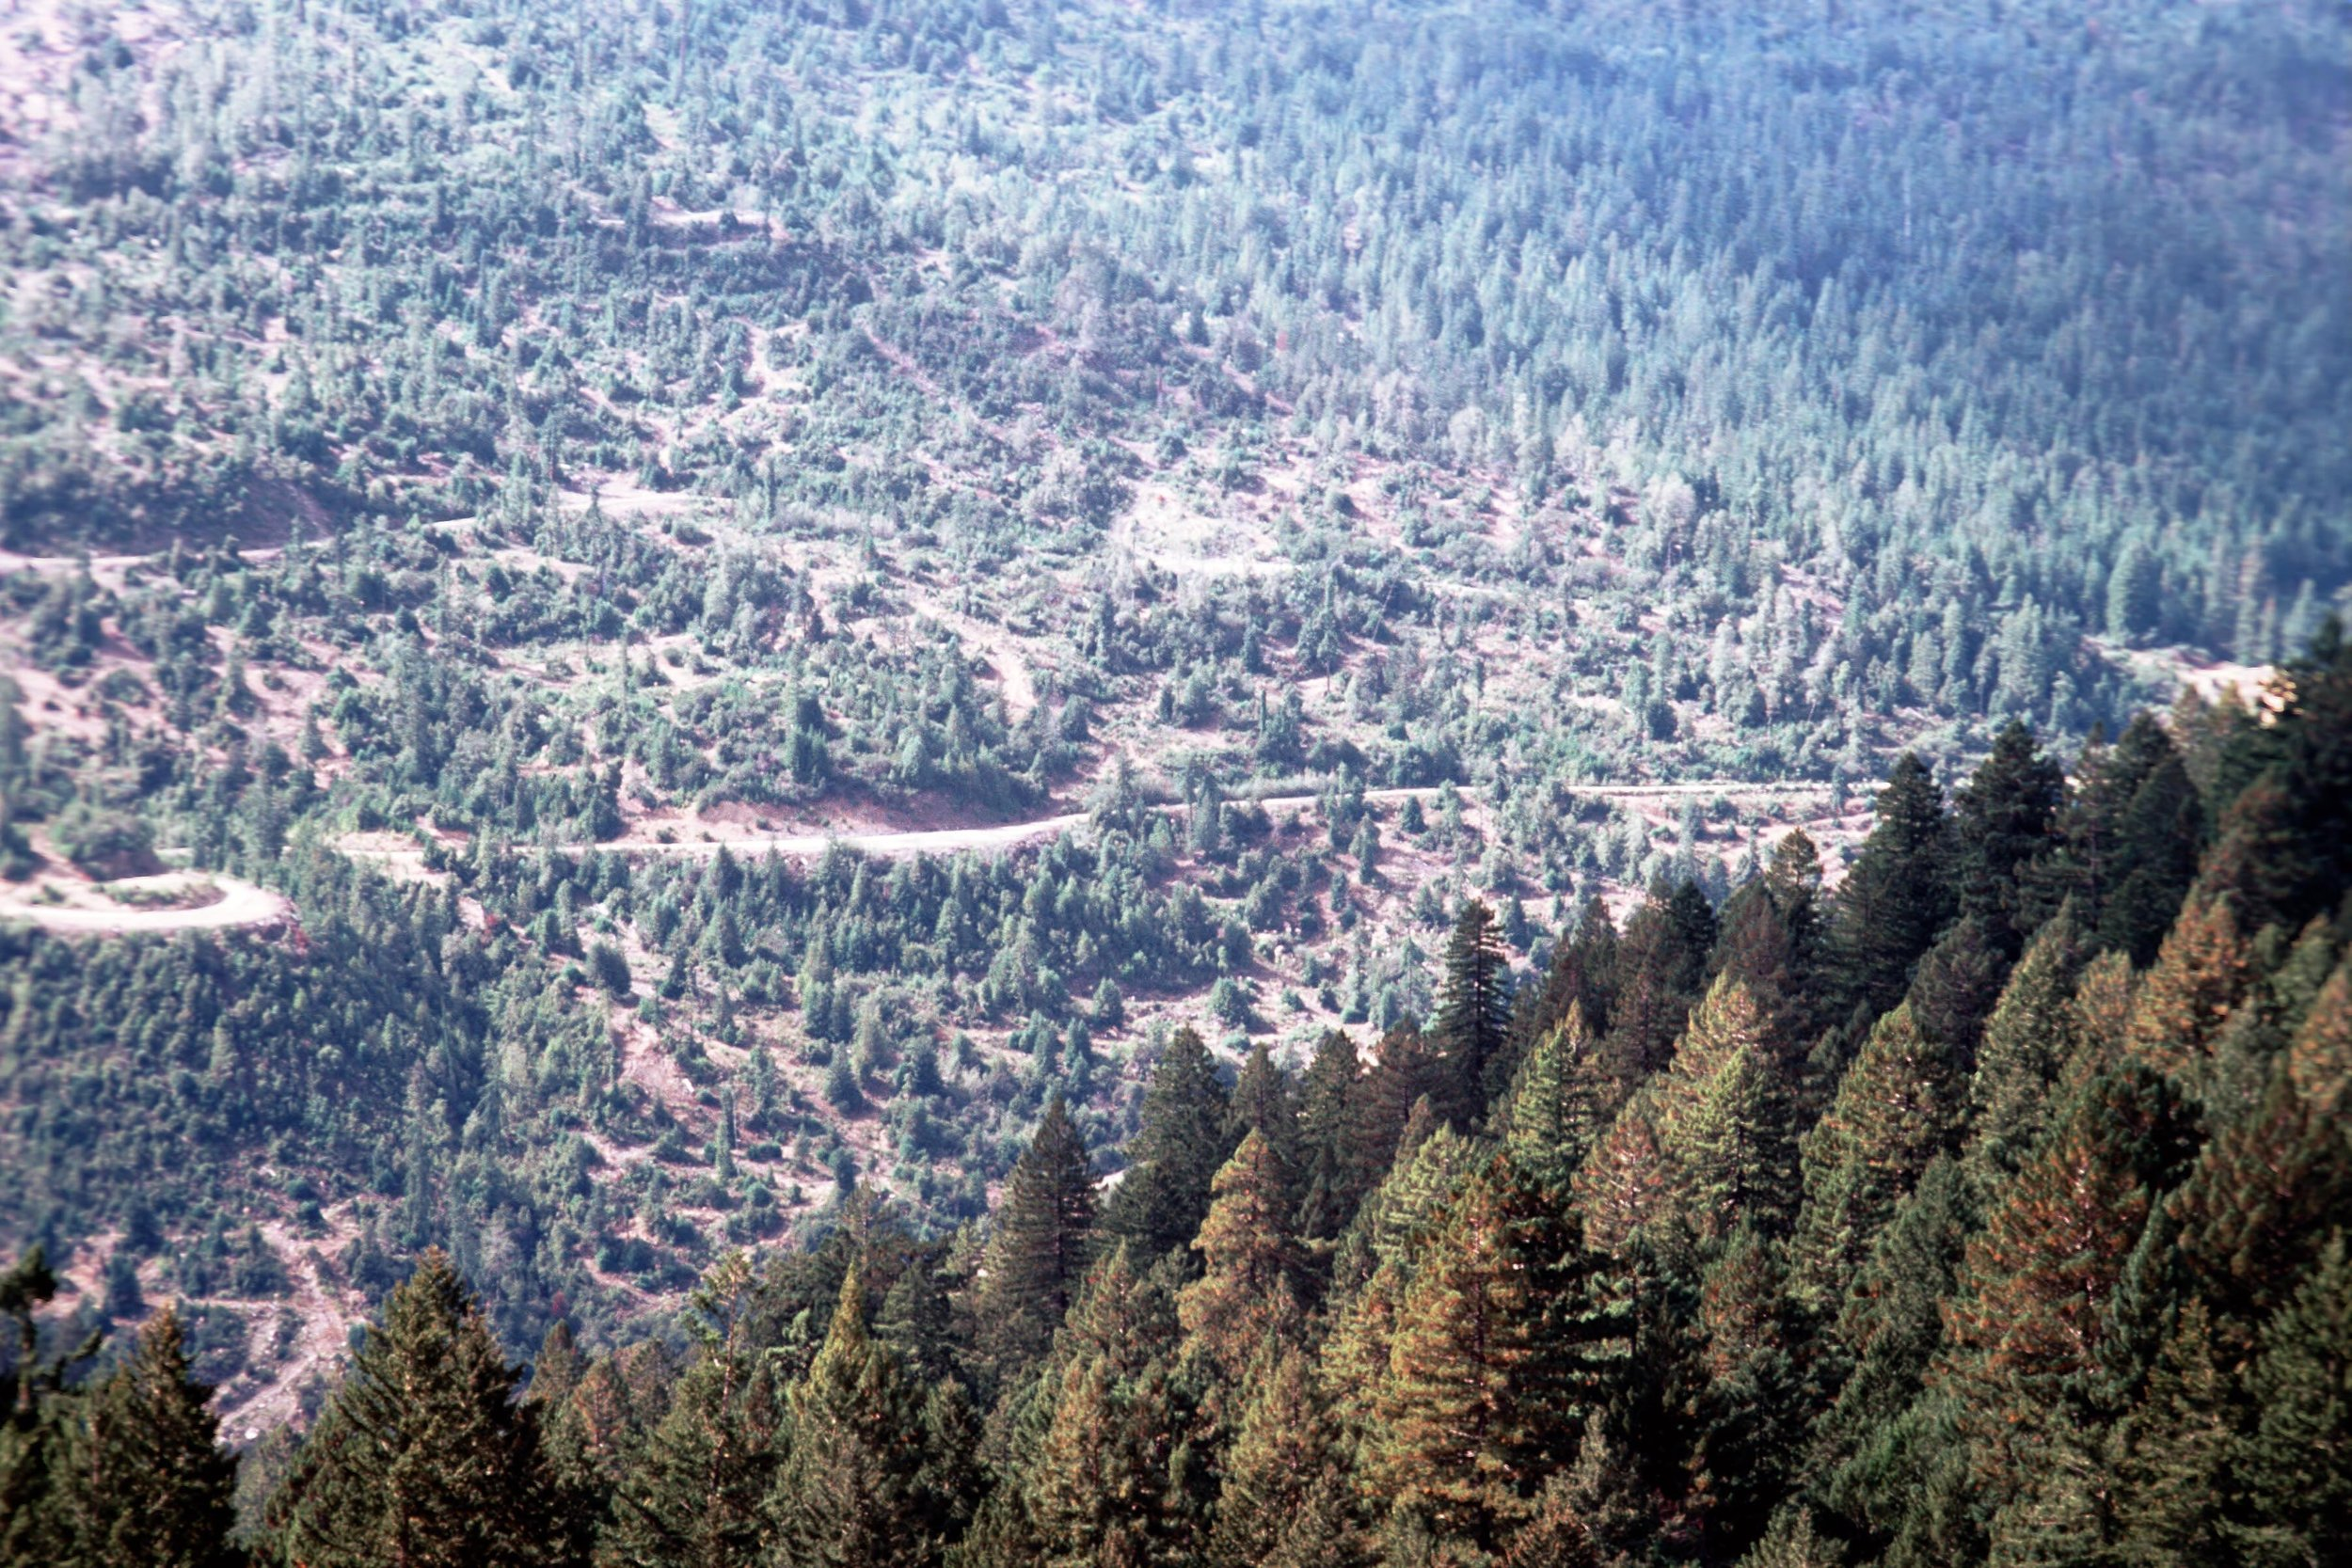 Clear cut at Owl-Creek grove, 1995, Headwaters, Northern Ca. You can see the even age growth in the upper right of this image next to the residue of more recent clear cut logging. The Headwaters Forest became a State Reserve in March of 1999, after the largest forest defense action in U.S. History.